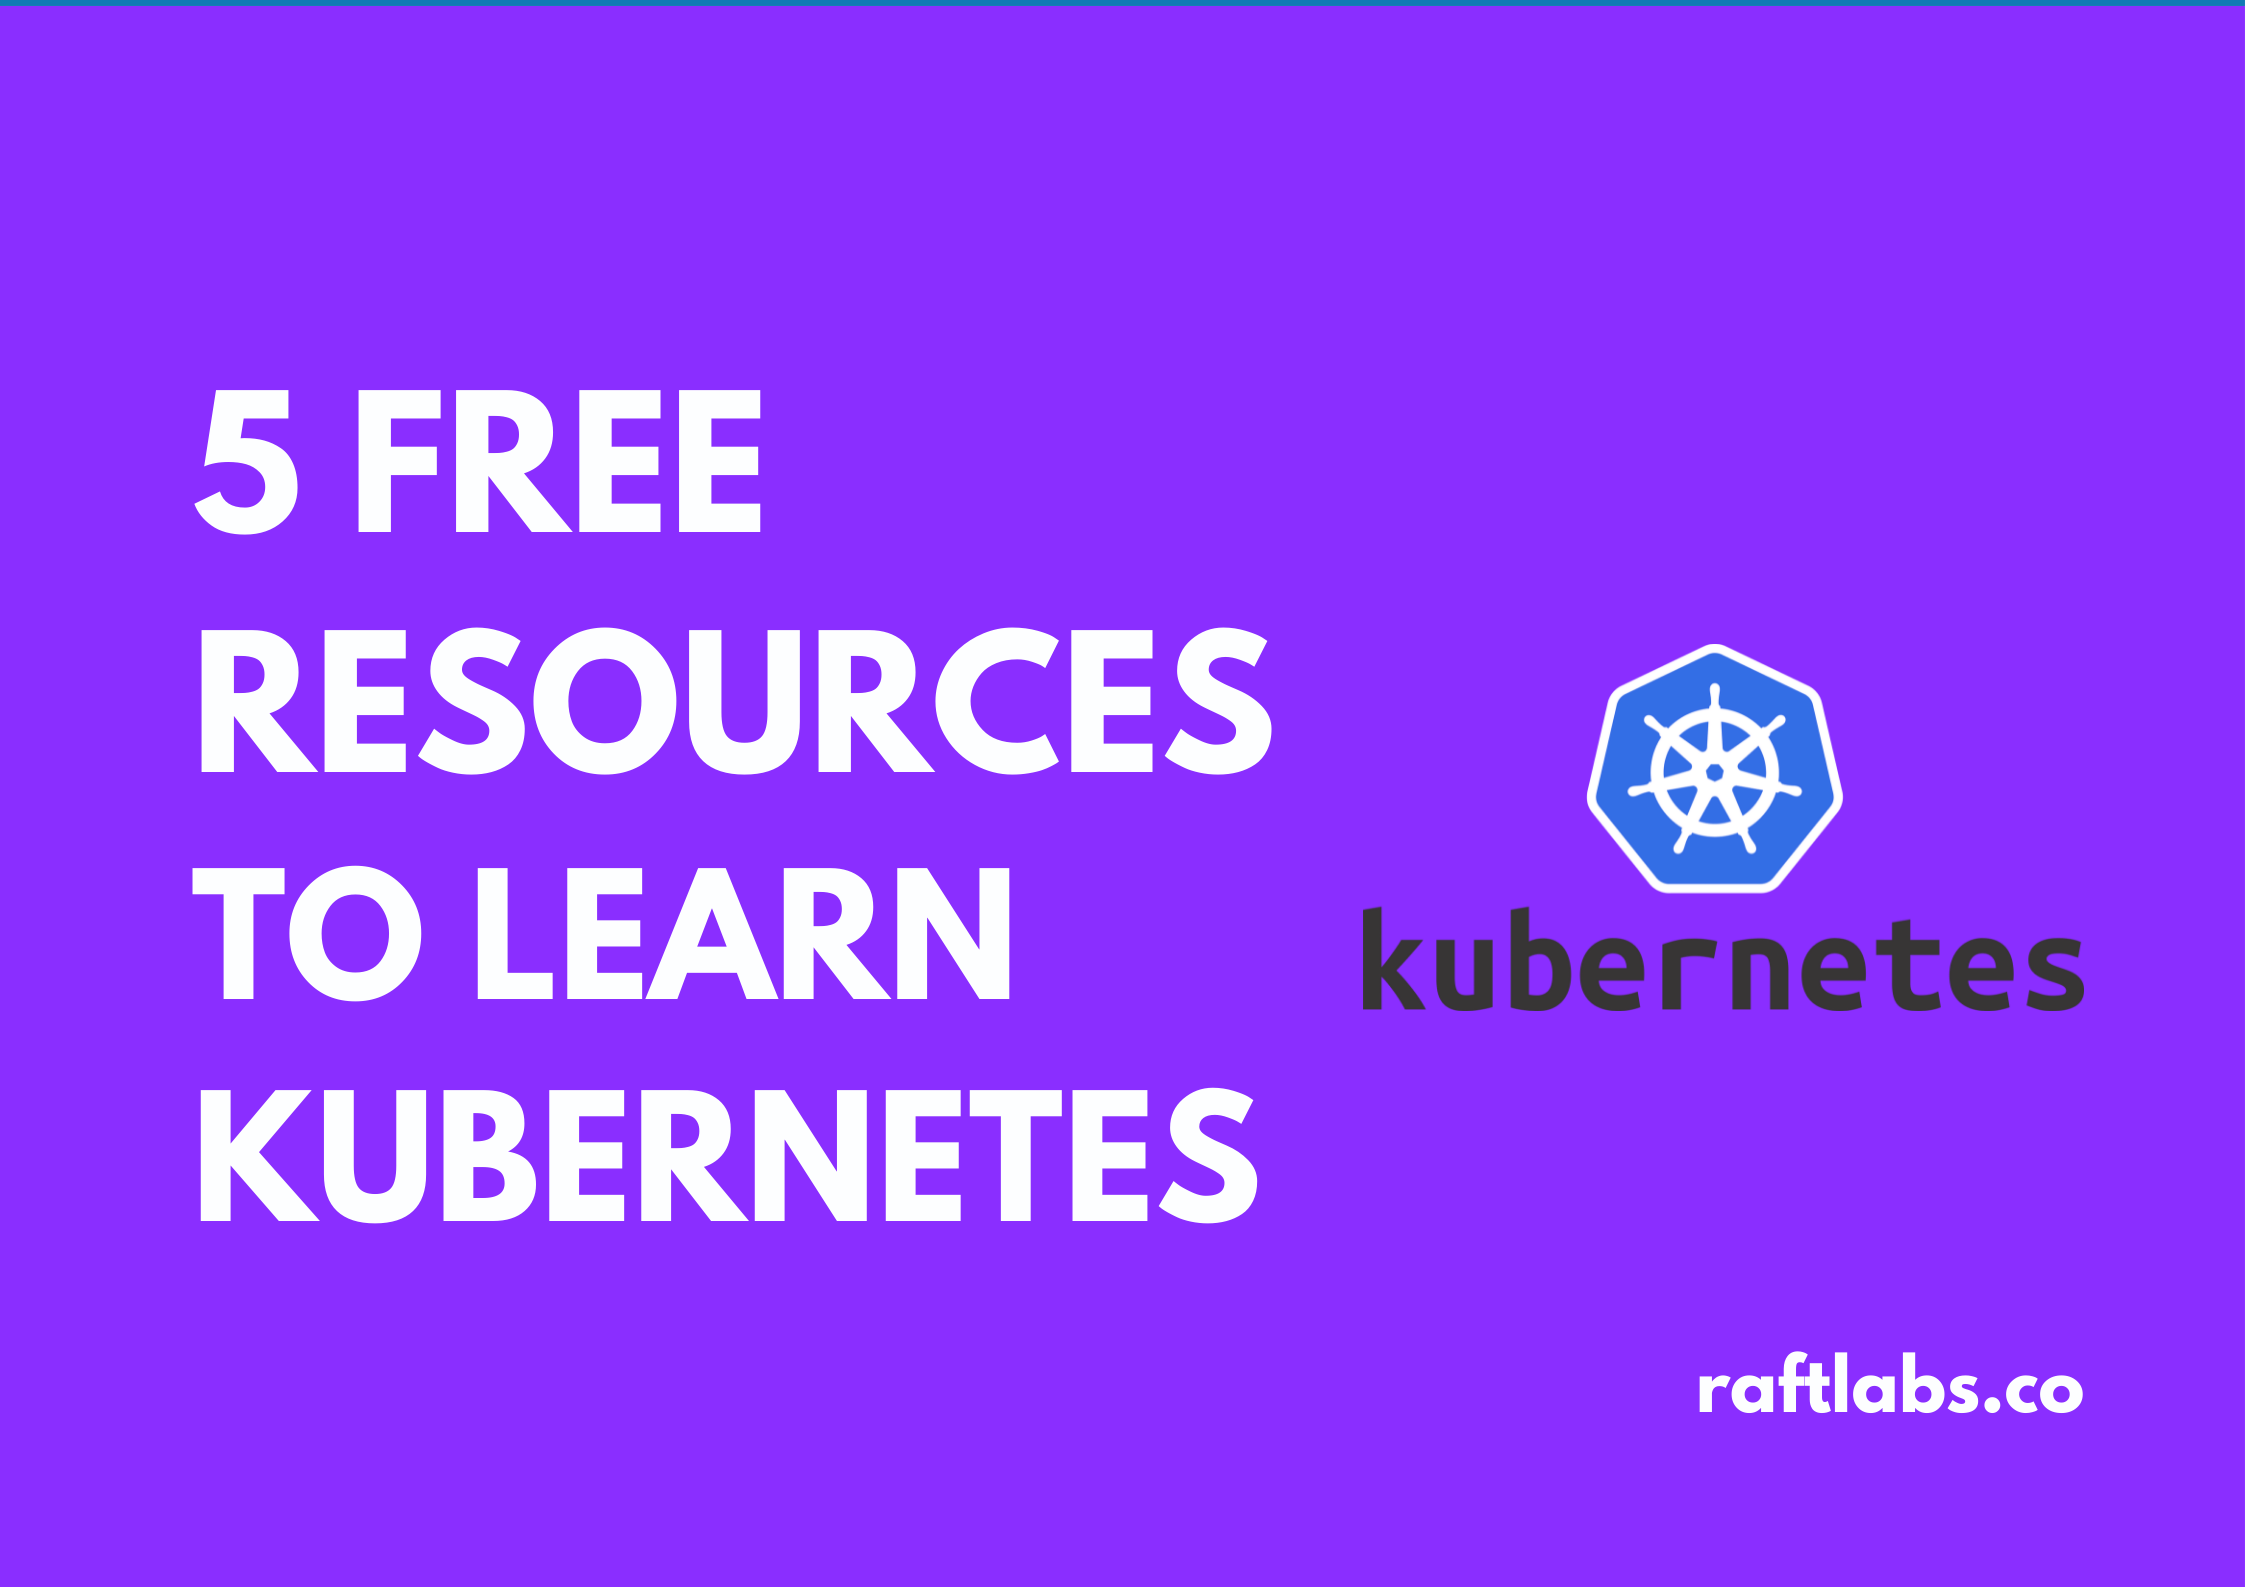 5 Free Resources to learn Kubernetes with Kubernetes logo - raftlabs.co